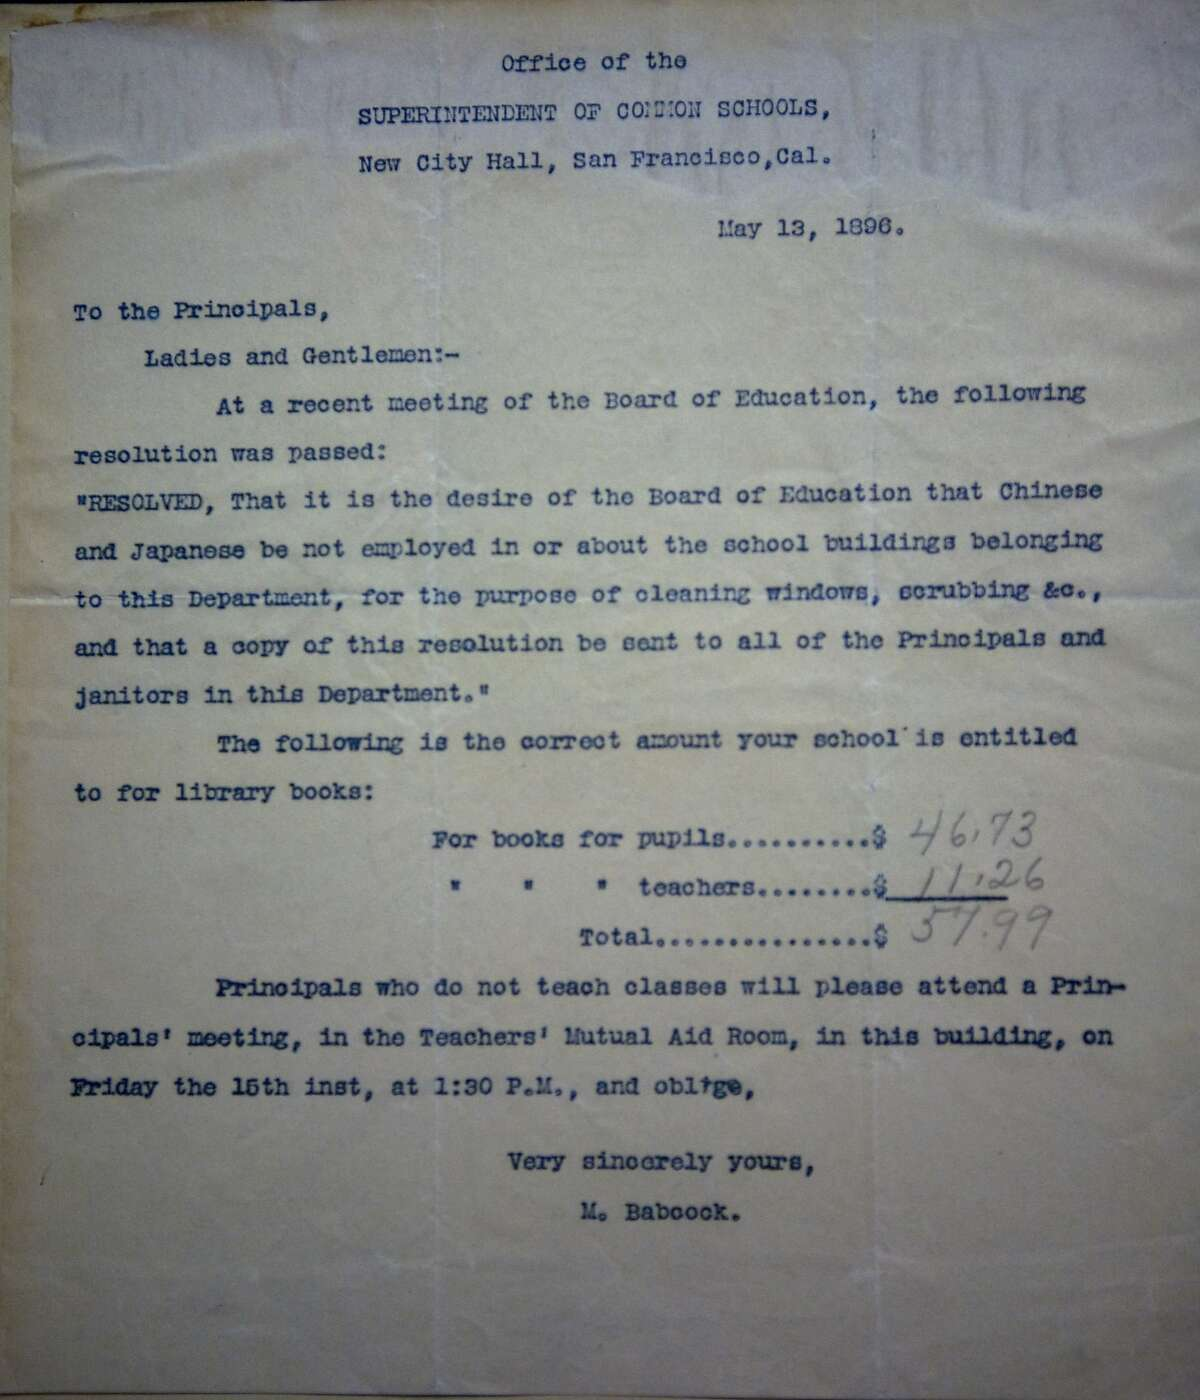 An 1896 letter from the San Francisco Superintendent of Common Schools advises school principals that Japanese and Chinese are not to be employed in area schools. The document is part of the San Francisco Public Library Archive as seen on Friday, Jan. 23, 2009.